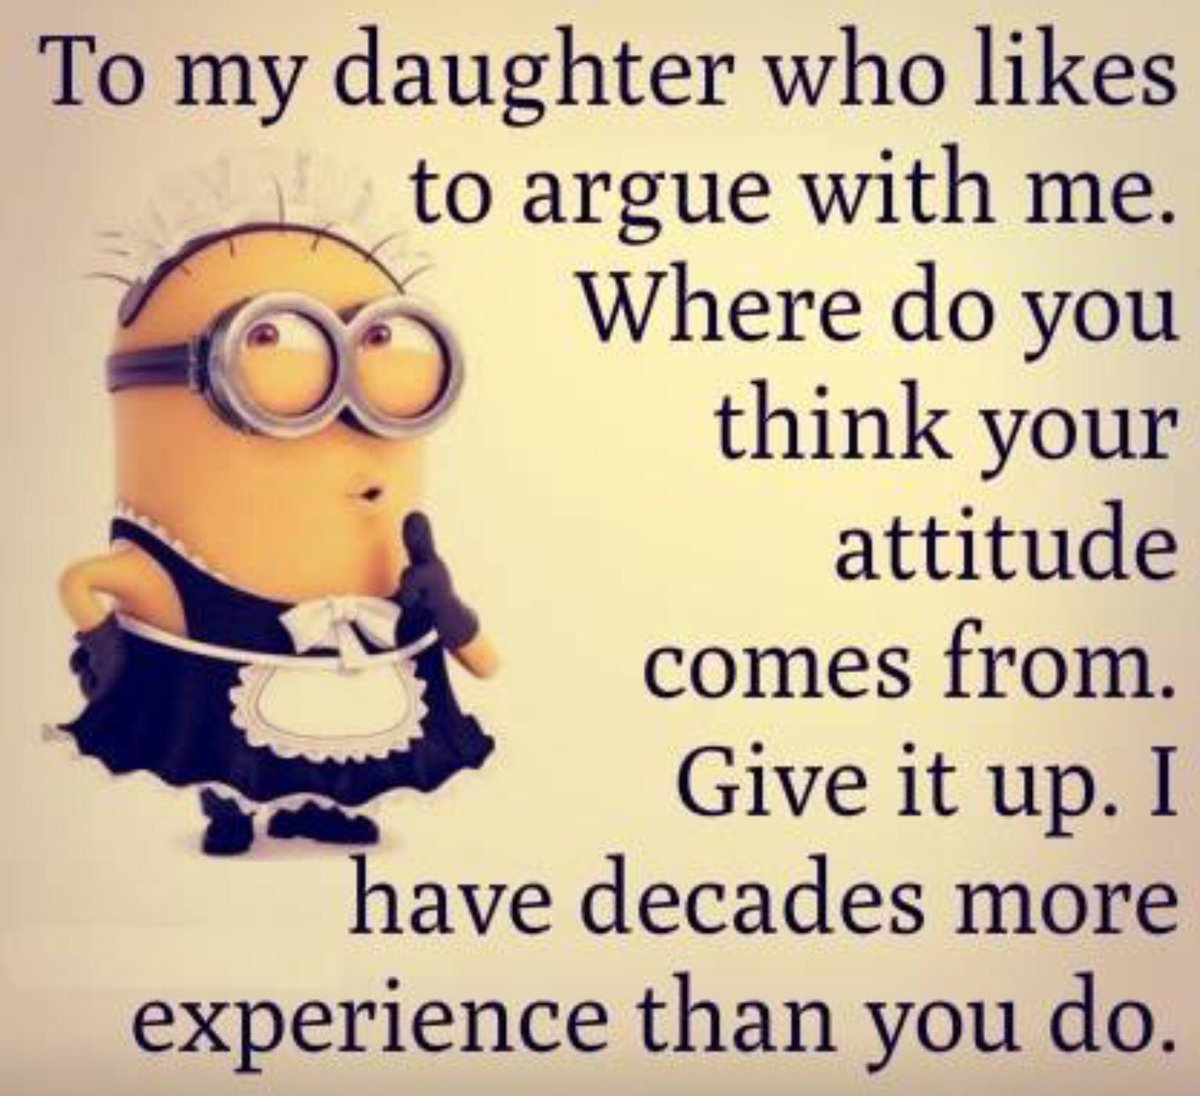 Funny Daughter Quotes Peggy De Waele Peggydewaele  Twitter